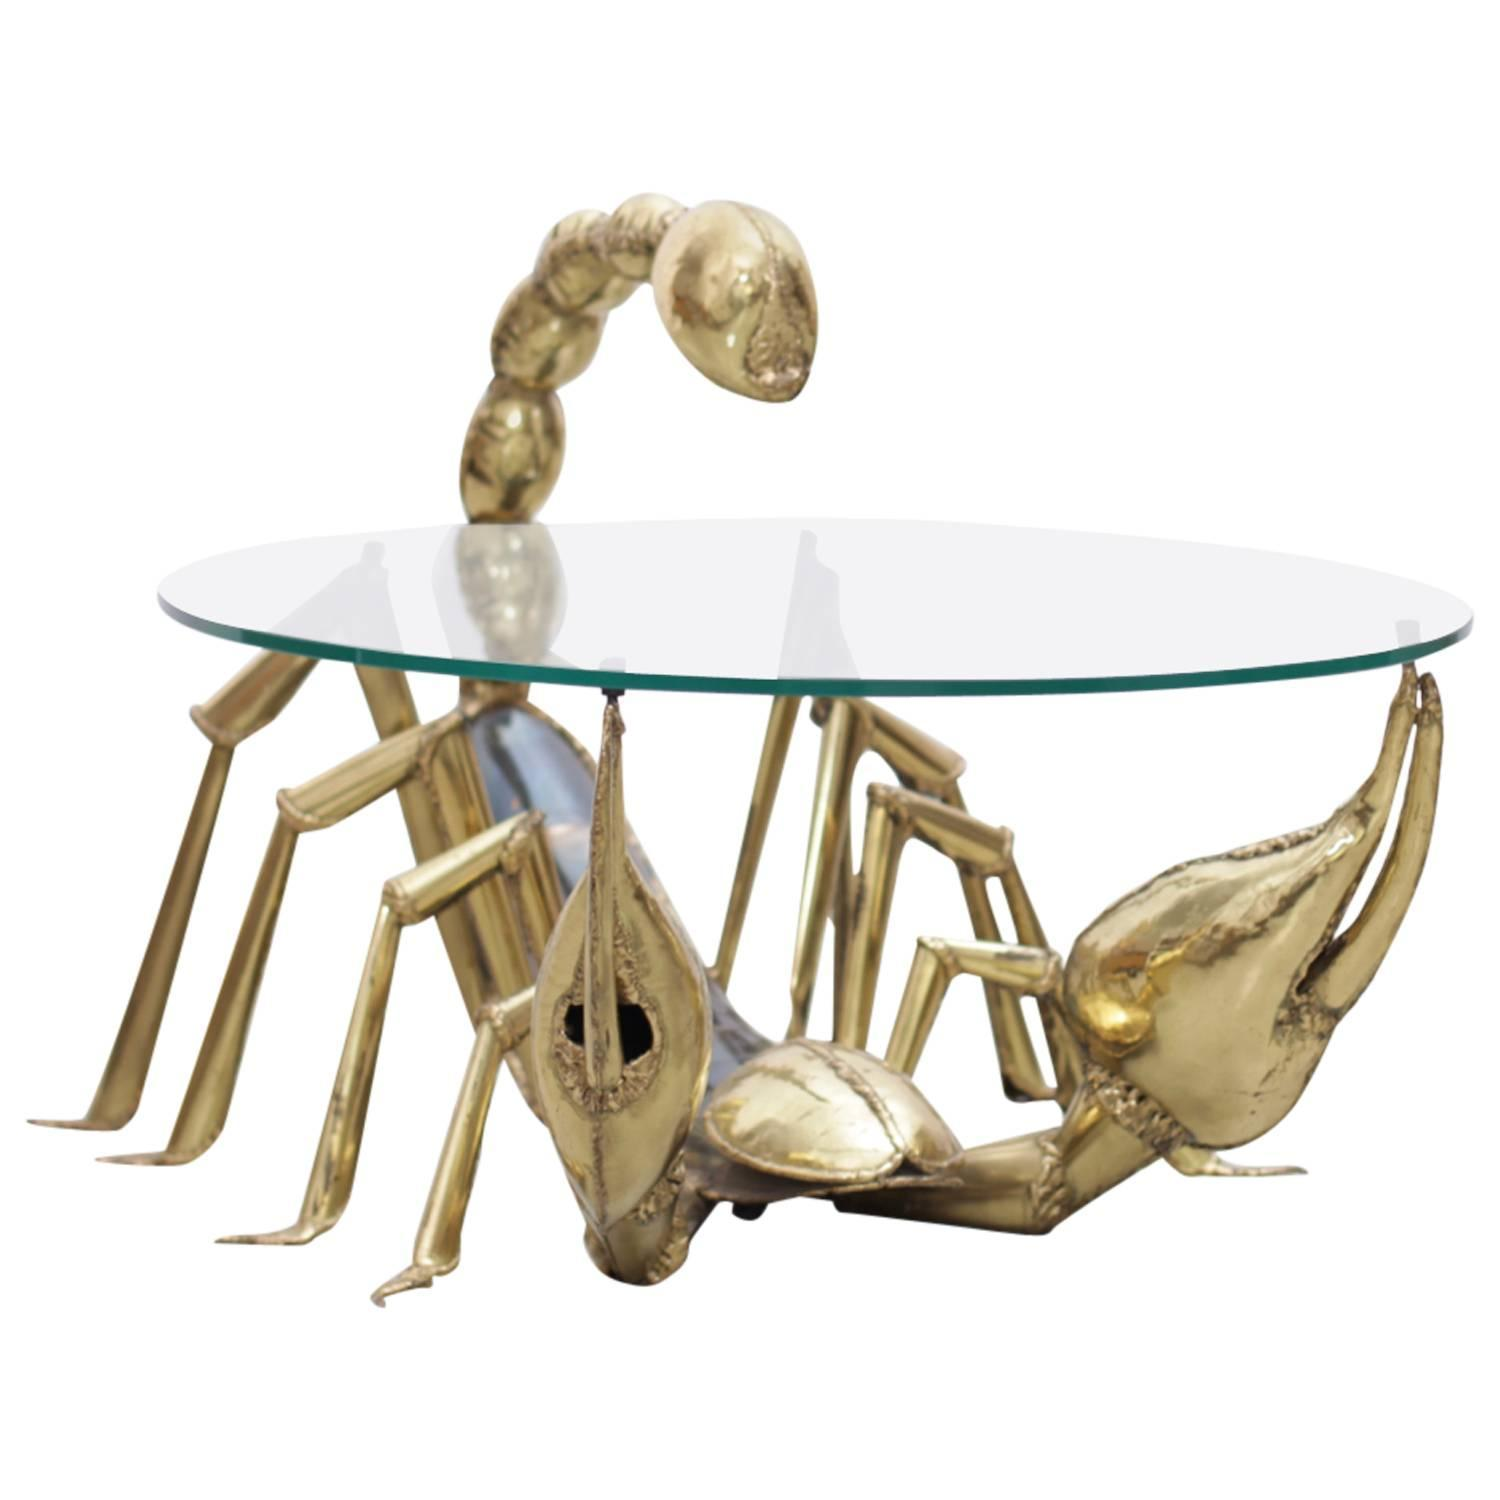 Rare Illuminated Brass Scorpion Coffee Table By Jacques